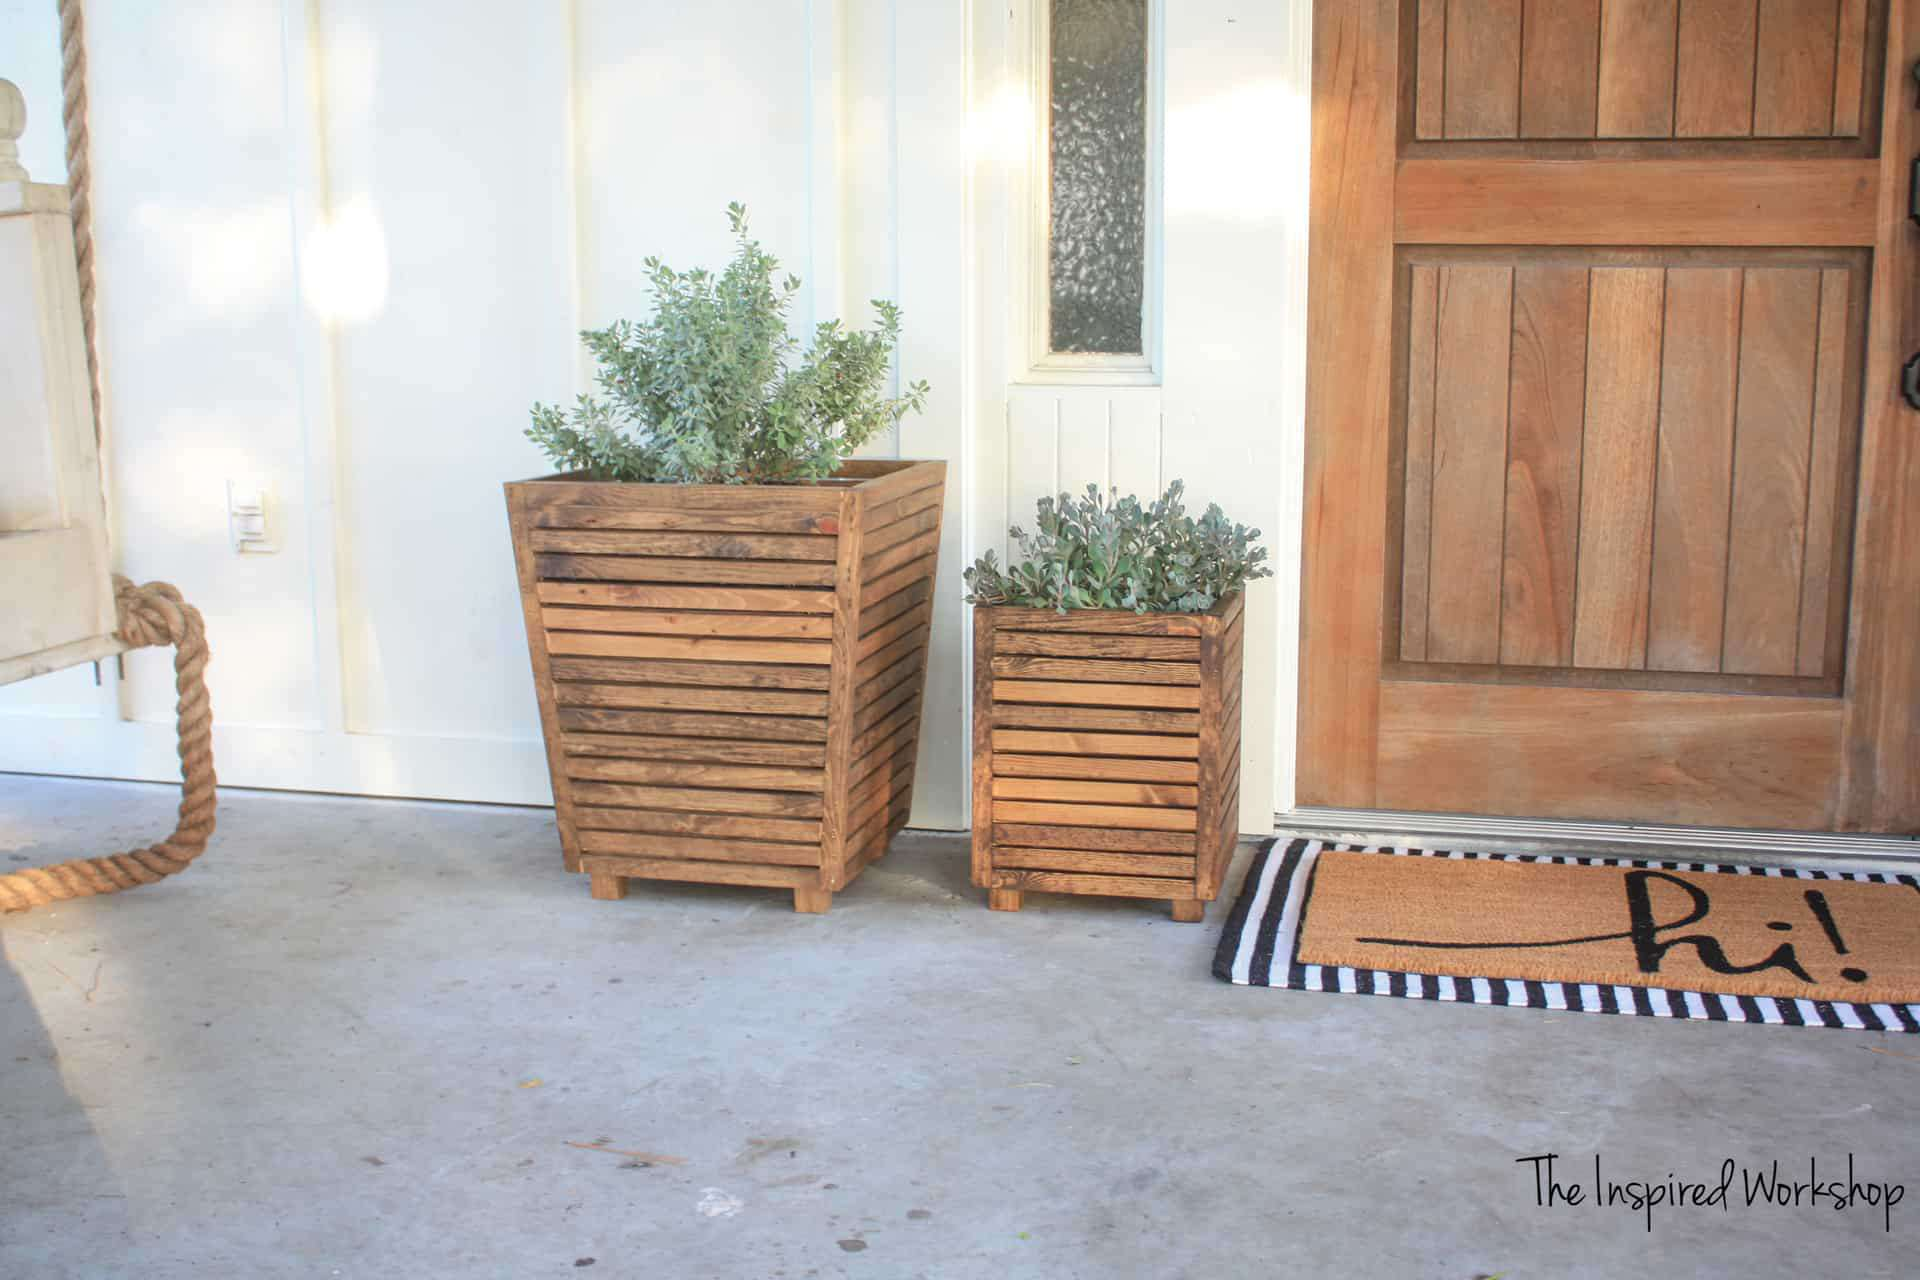 Two wooden planter boxes on a front porch.